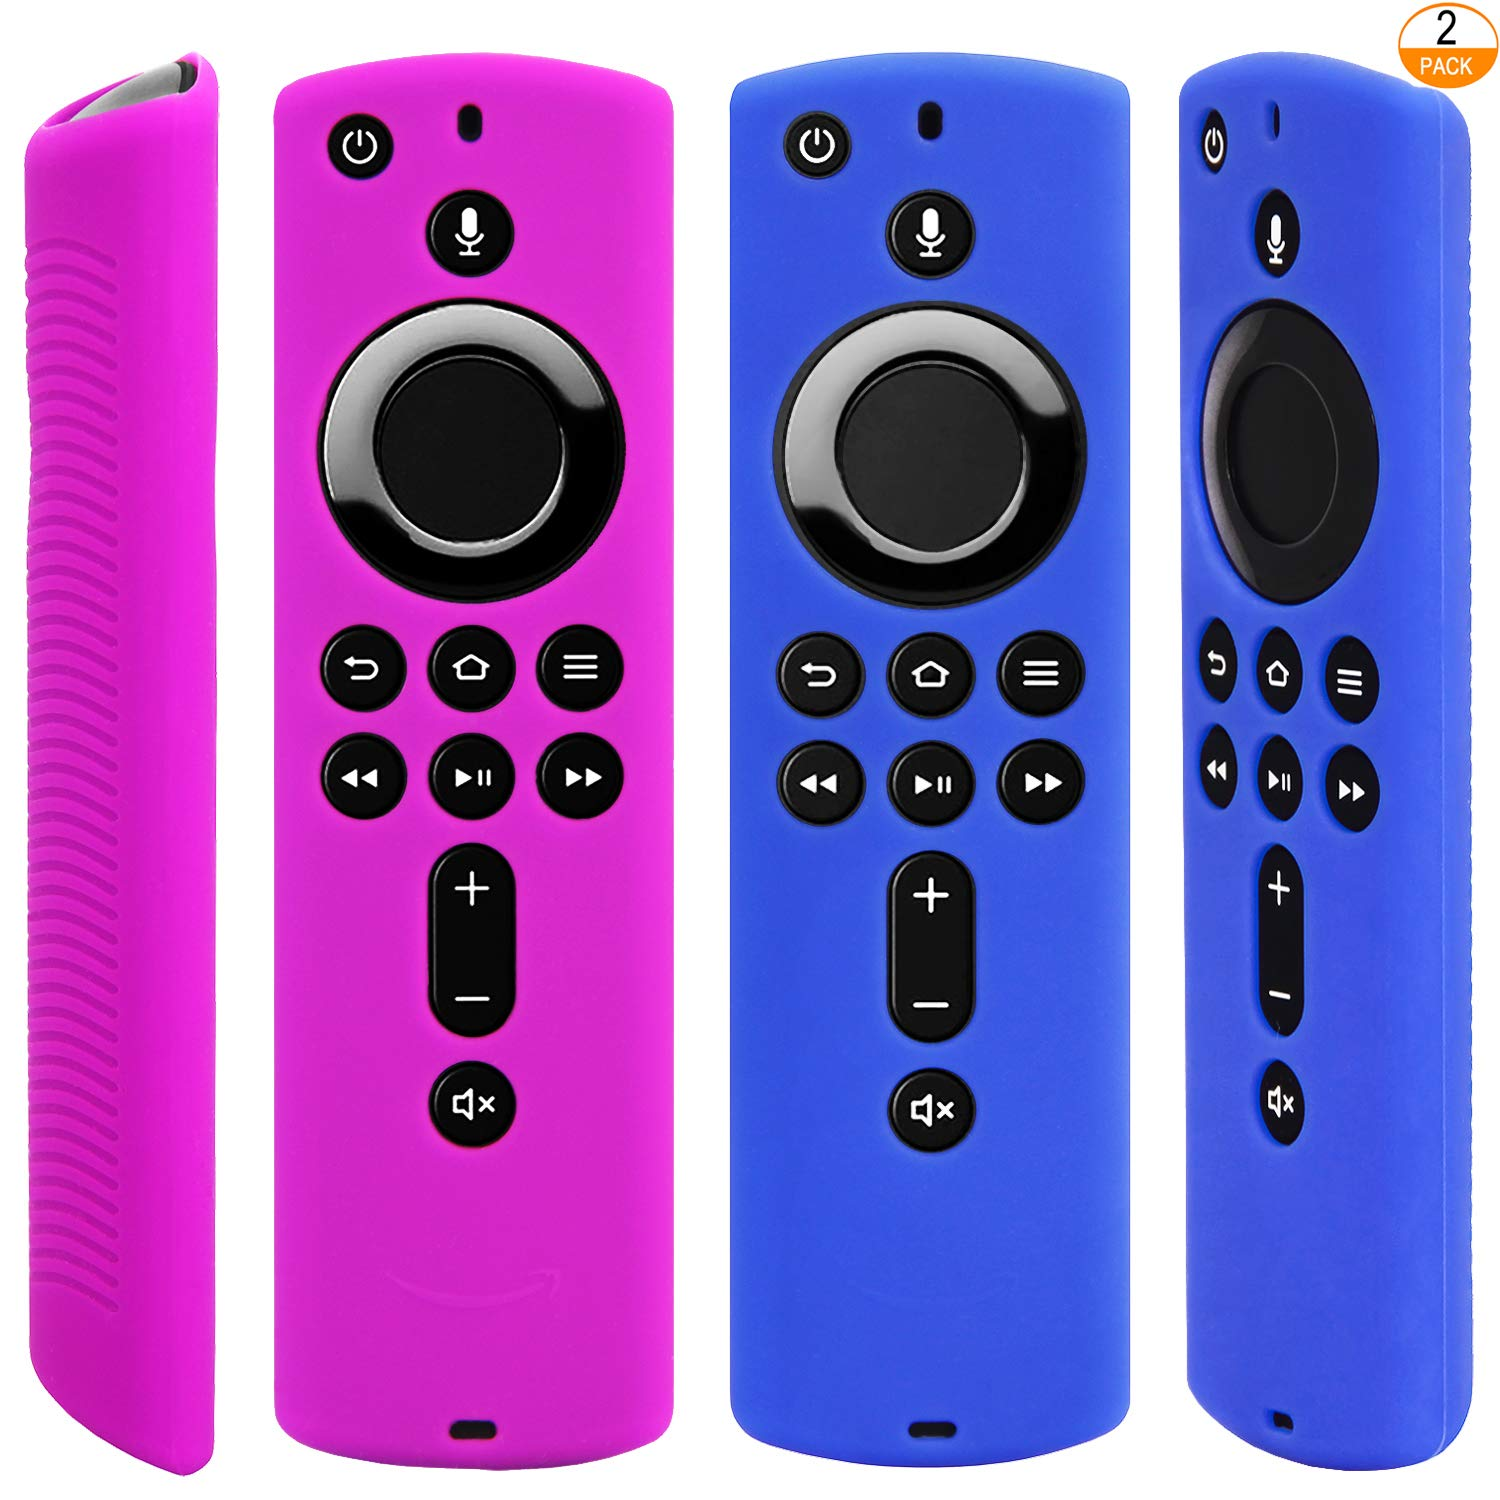 2 Pack Blue and Purple Silicone Protective Case Compatible with Fire TV Stick 4K Remote